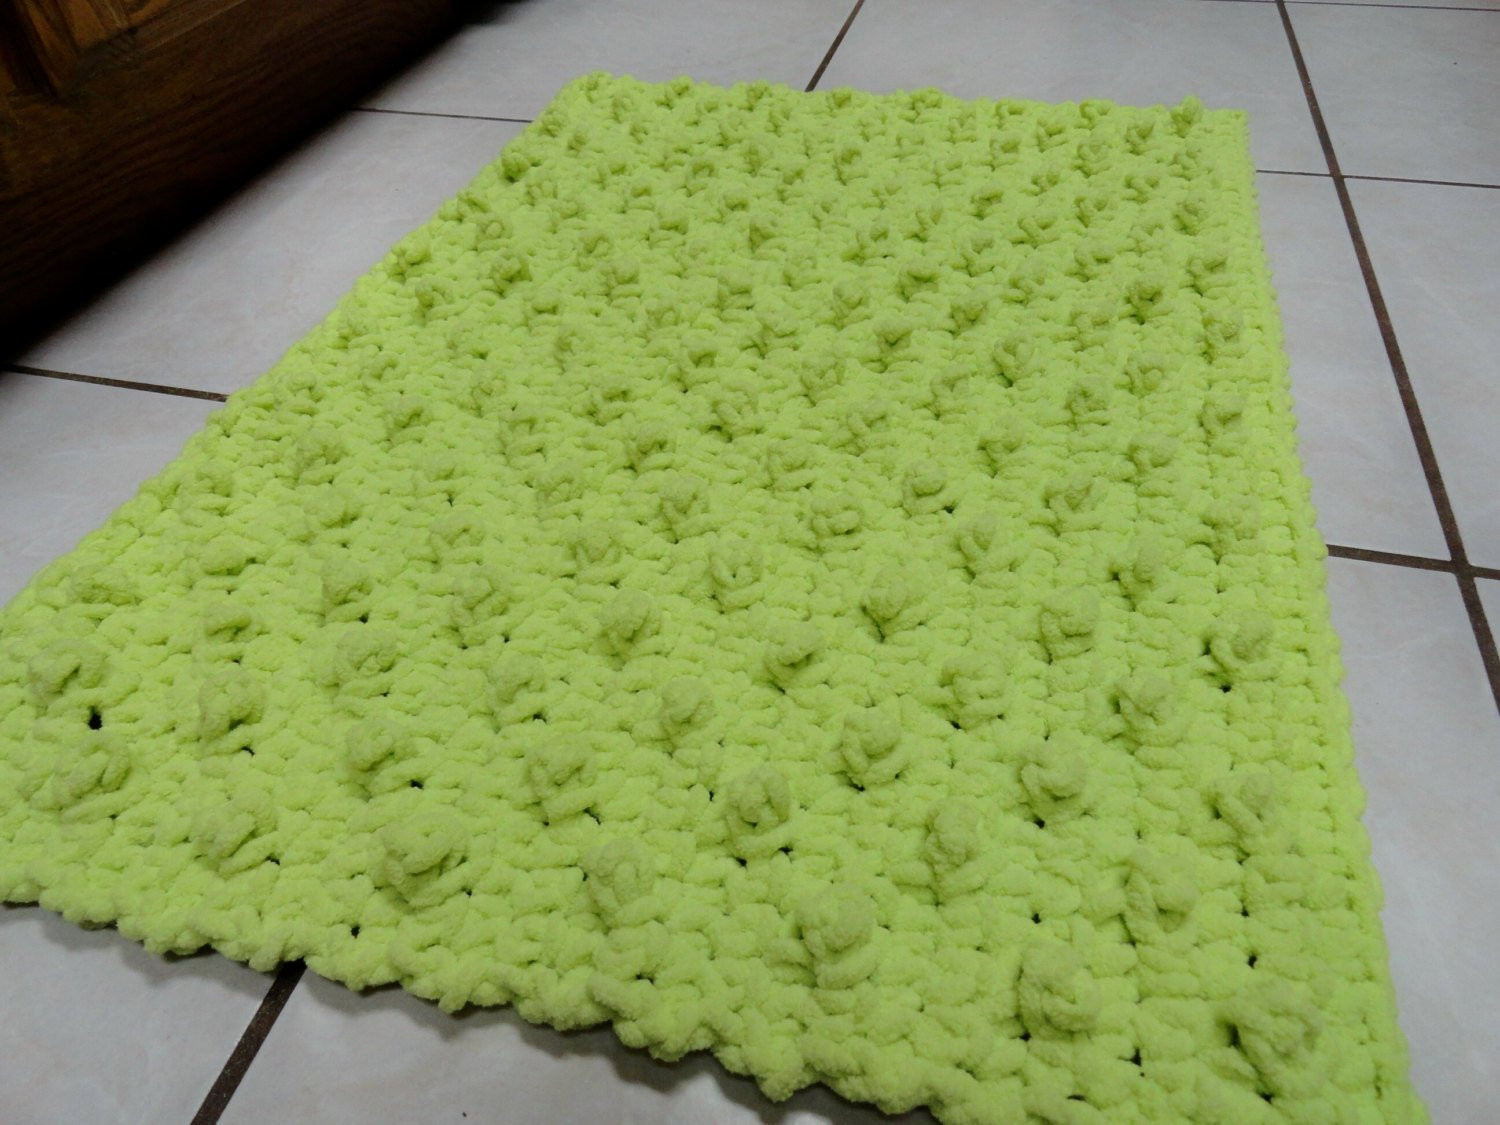 Elegant Crochet Bathroom Rug Bumpy Bath Mat Kitchen Rug Citron Lemon Crochet Bathroom Rug Of Great 43 Images Crochet Bathroom Rug